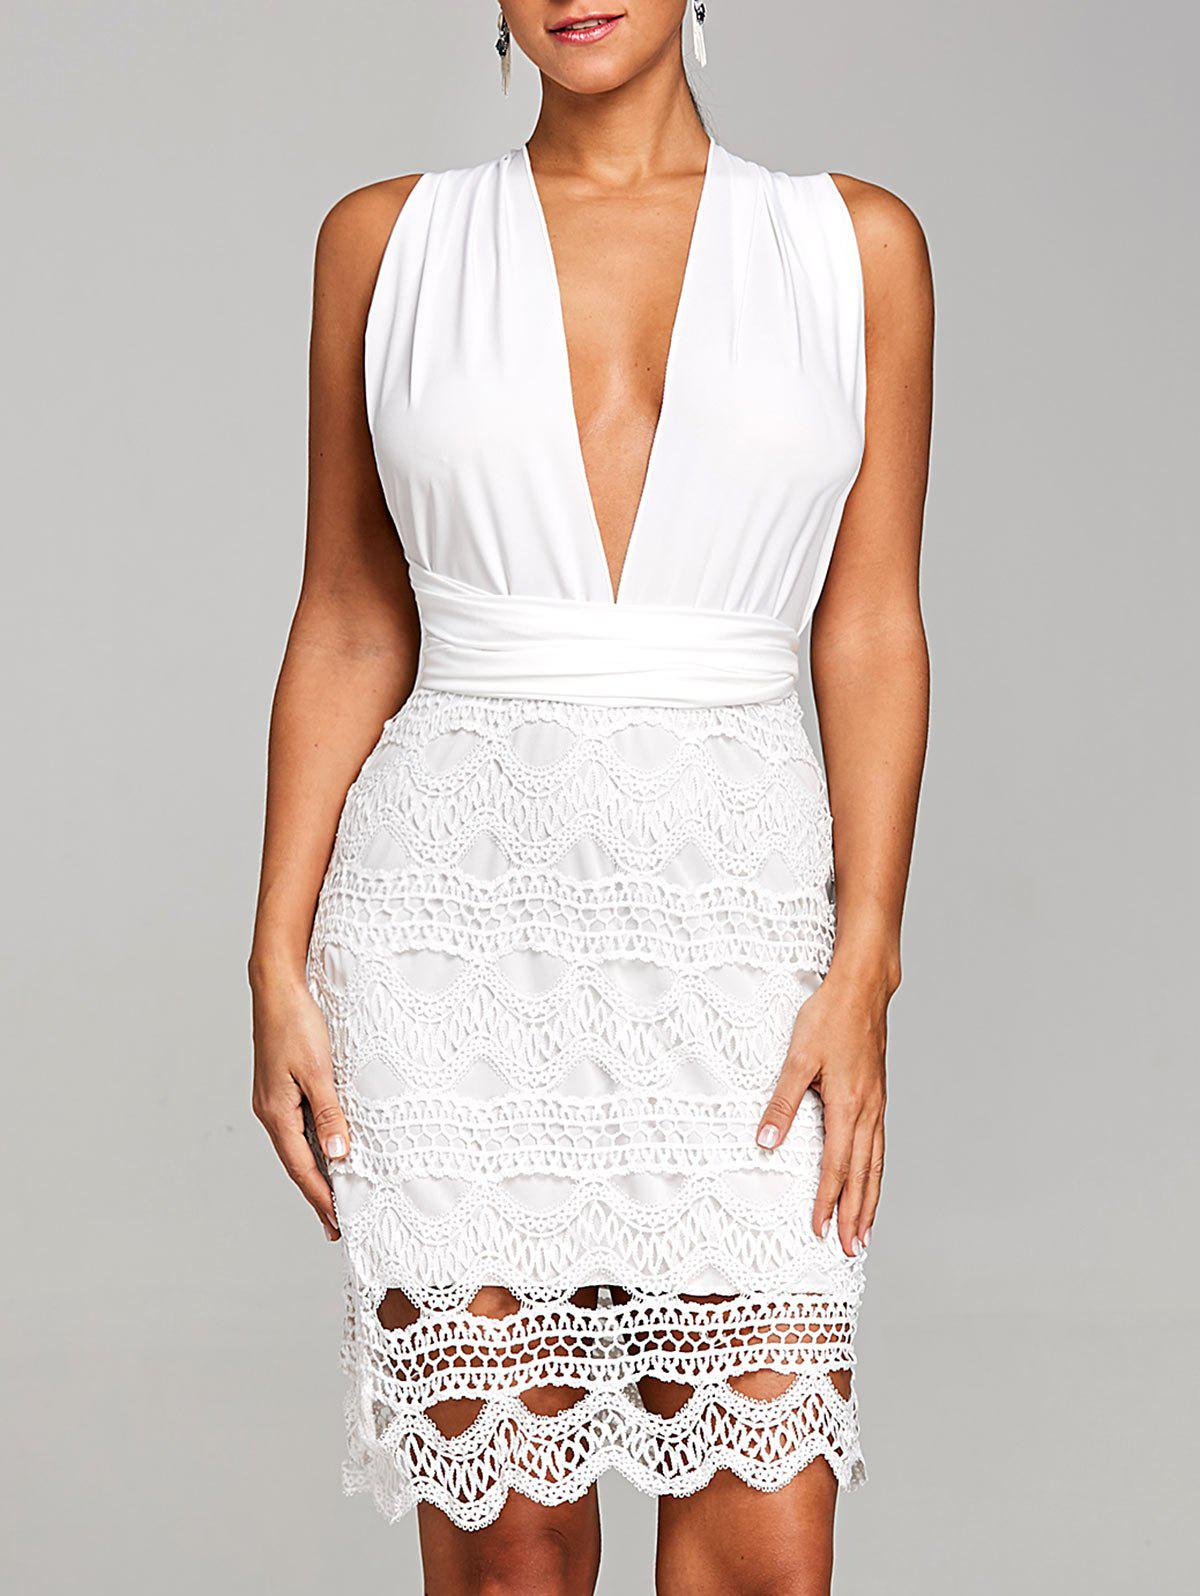 Scalloped Crochet Low Cut Club Dress - WHITE L